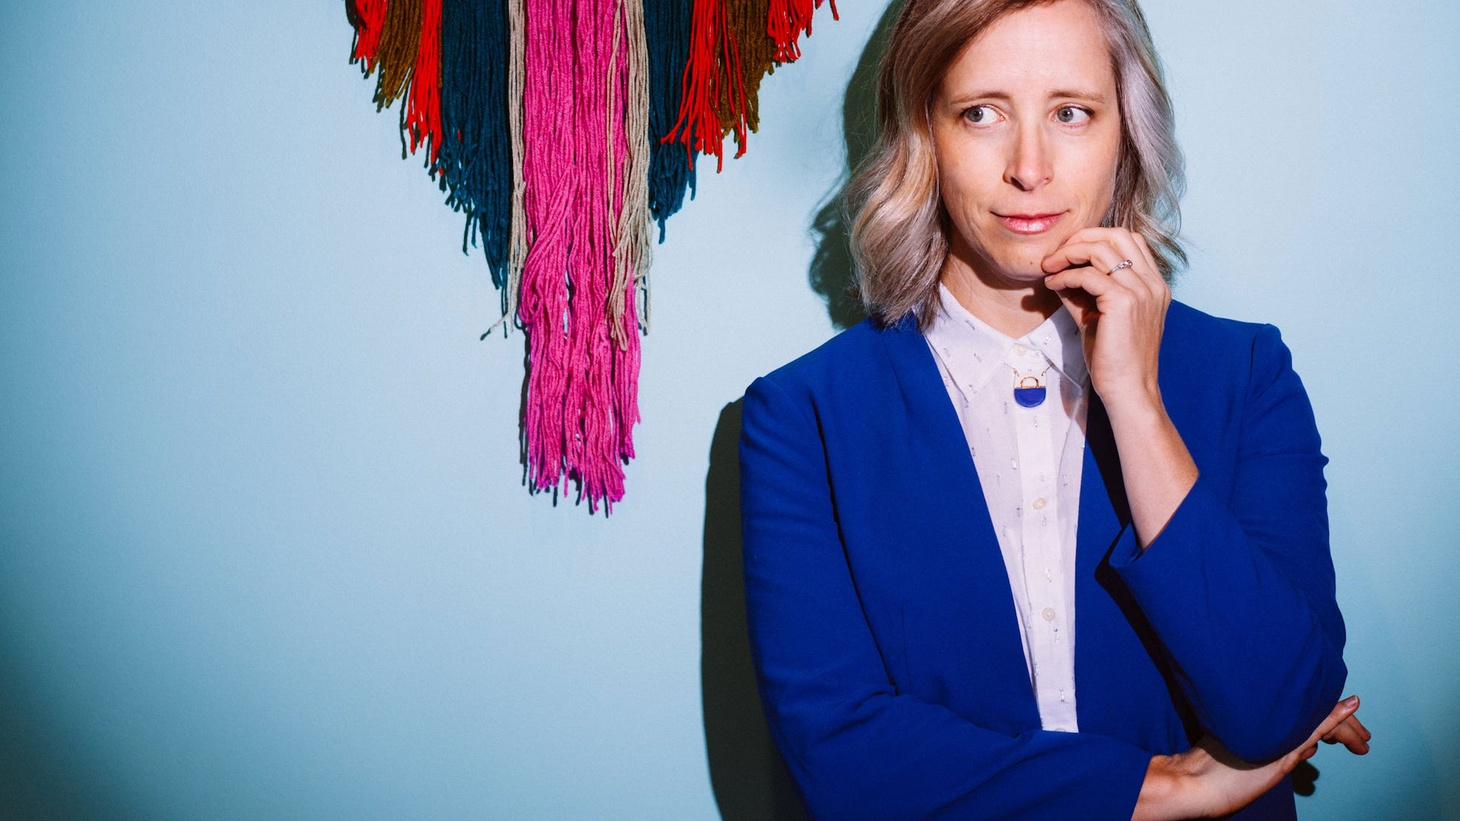 Laura Veirs follows her 2016 collaboration with k.d. lang and Neko Case with a solo album. It's themed around the fragility of precious things, as Veirs unpacks her expansive musical skills.